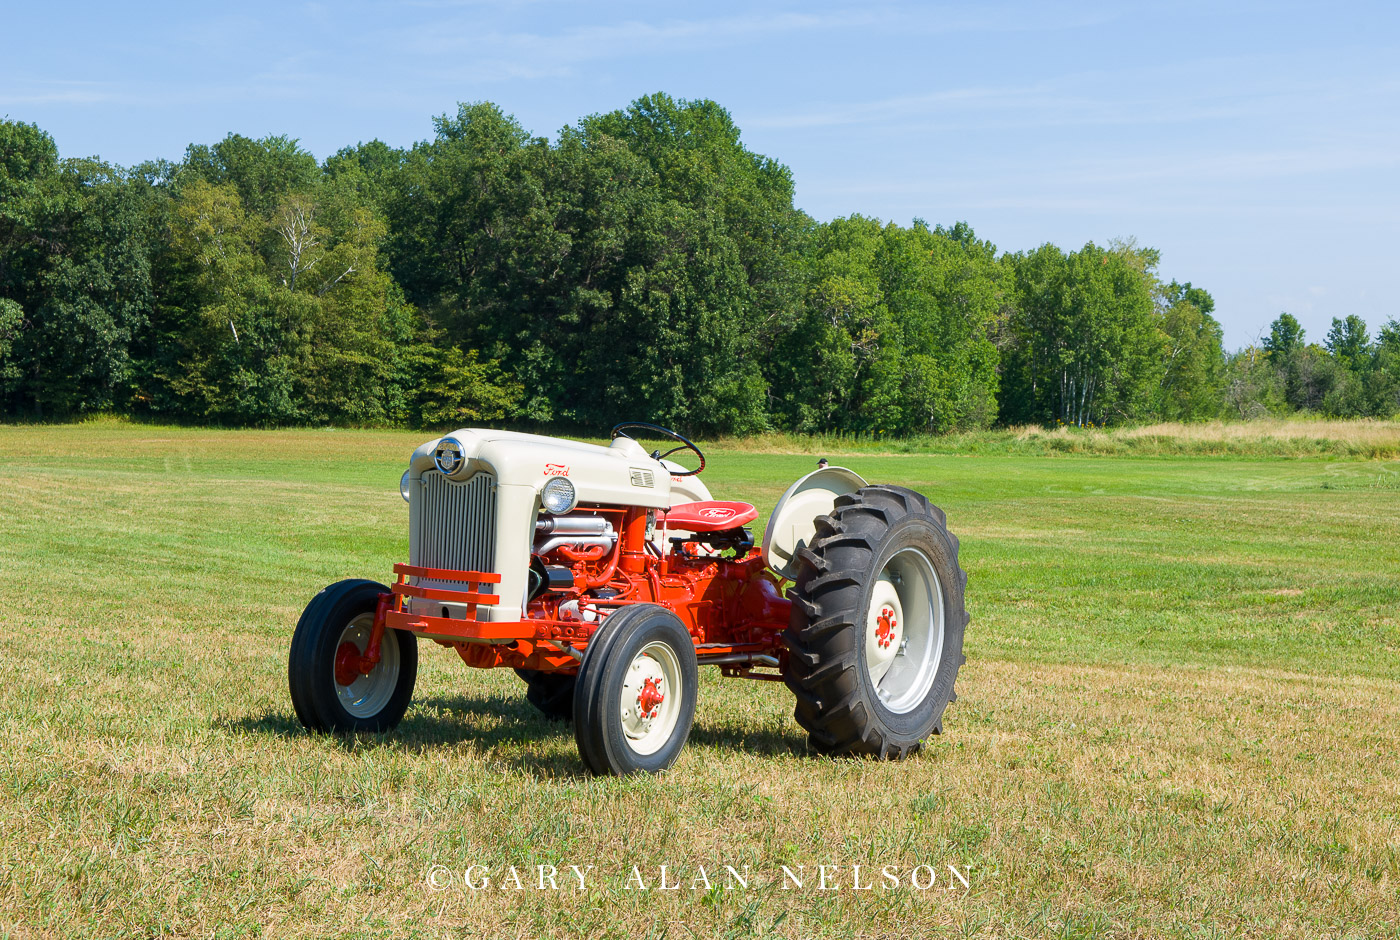 1955 Ford Series 800 tractor